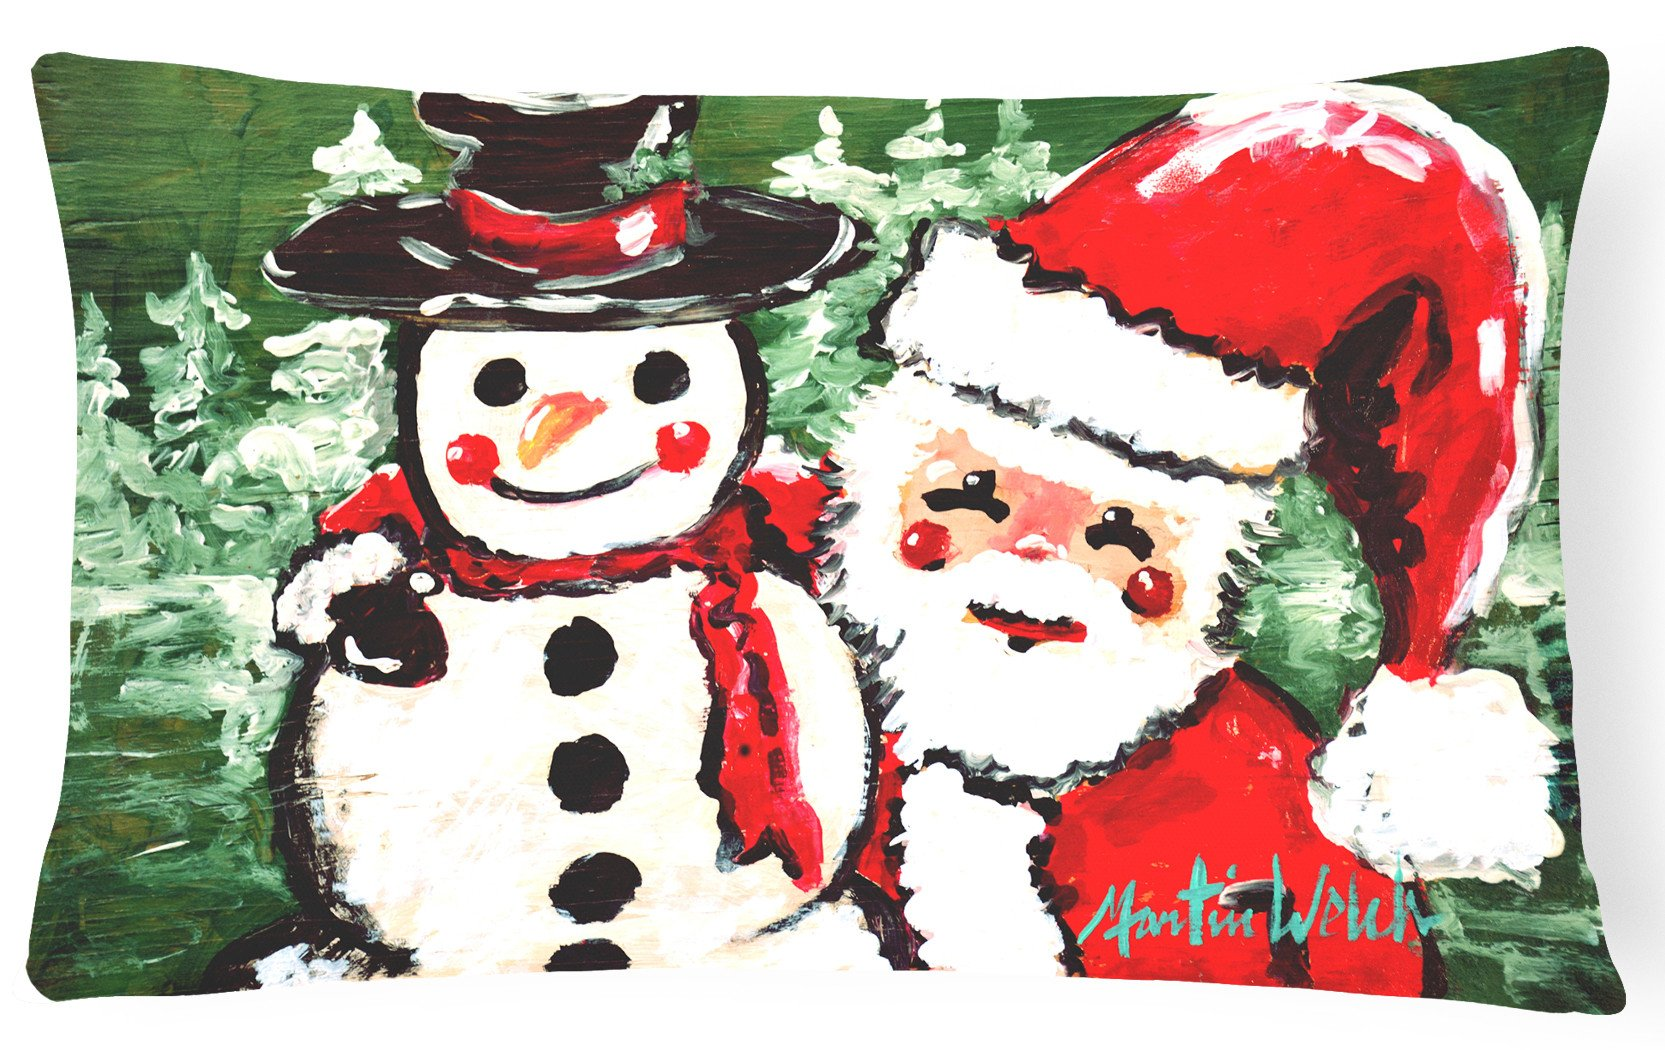 Friends Snowman and Santa Claus   Canvas Fabric Decorative Pillow MW1167PW1216 by Caroline's Treasures